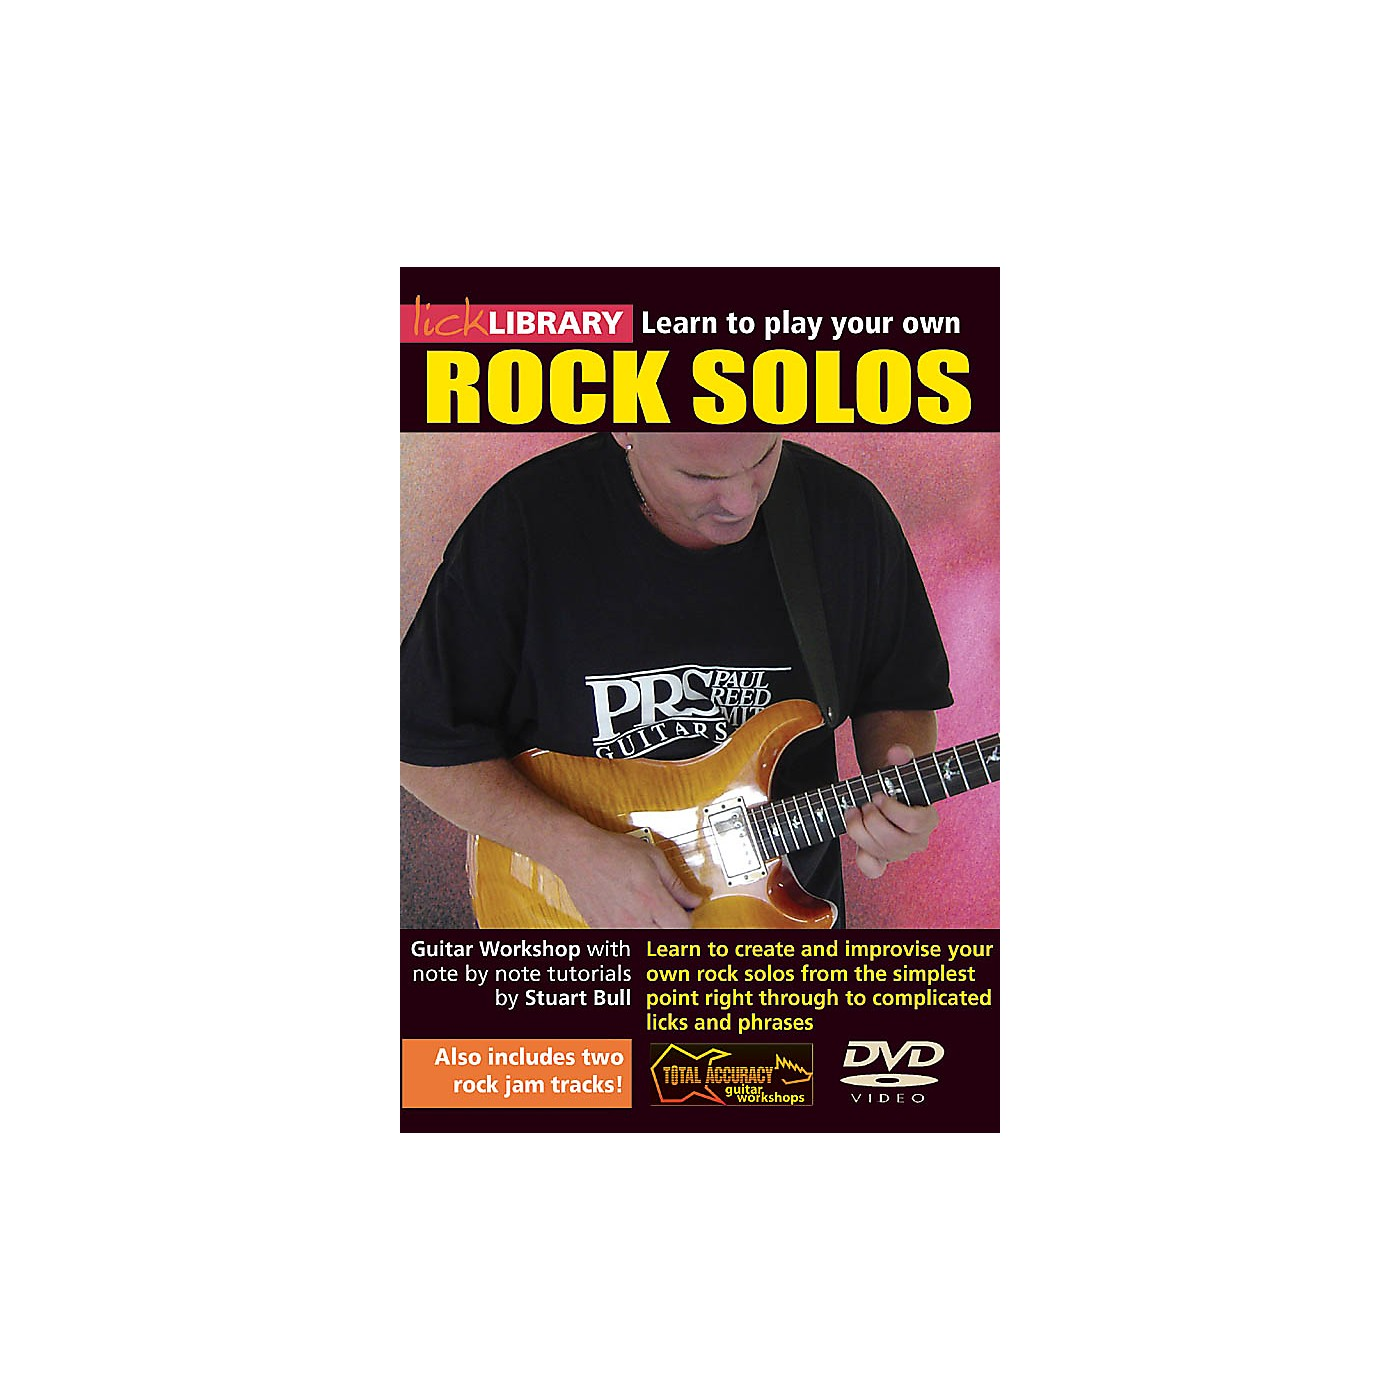 Licklibrary Learn to Play Your Own Rock Solos Lick Library Series DVD Performed by Stuart Bull thumbnail